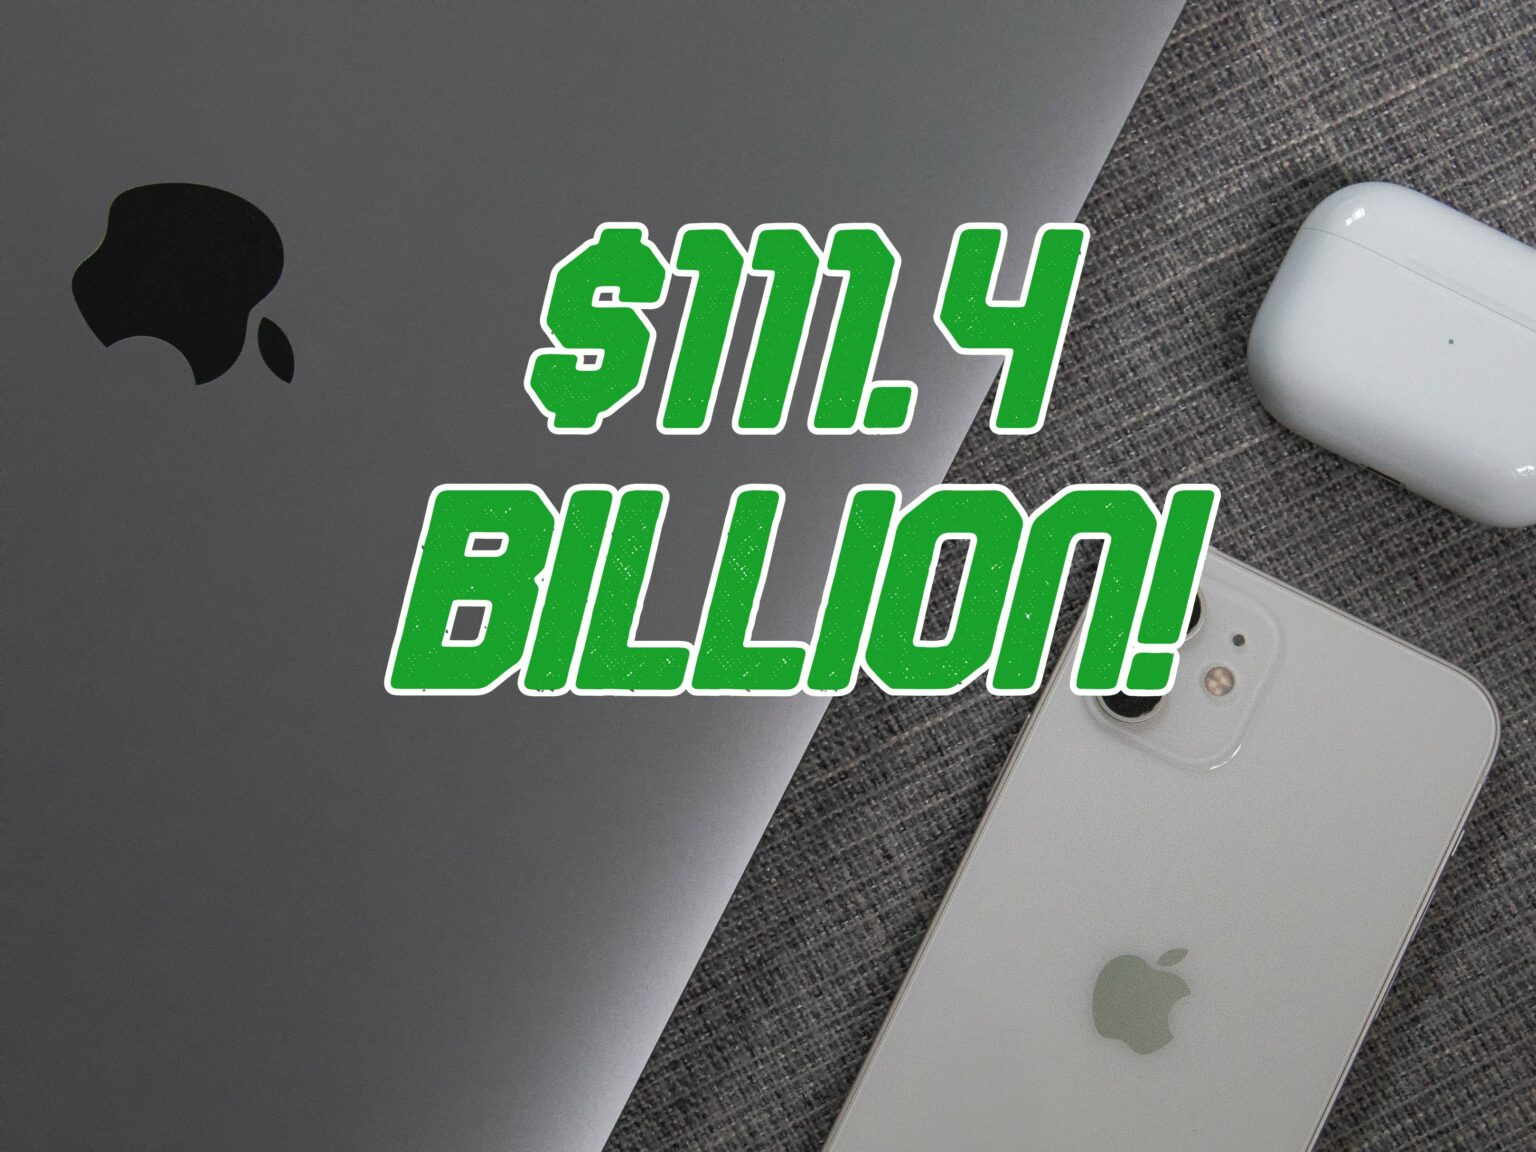 Apple roars through another record-setting financial quarter, with a massive $111.4 billion in revenue for Q1 2021.